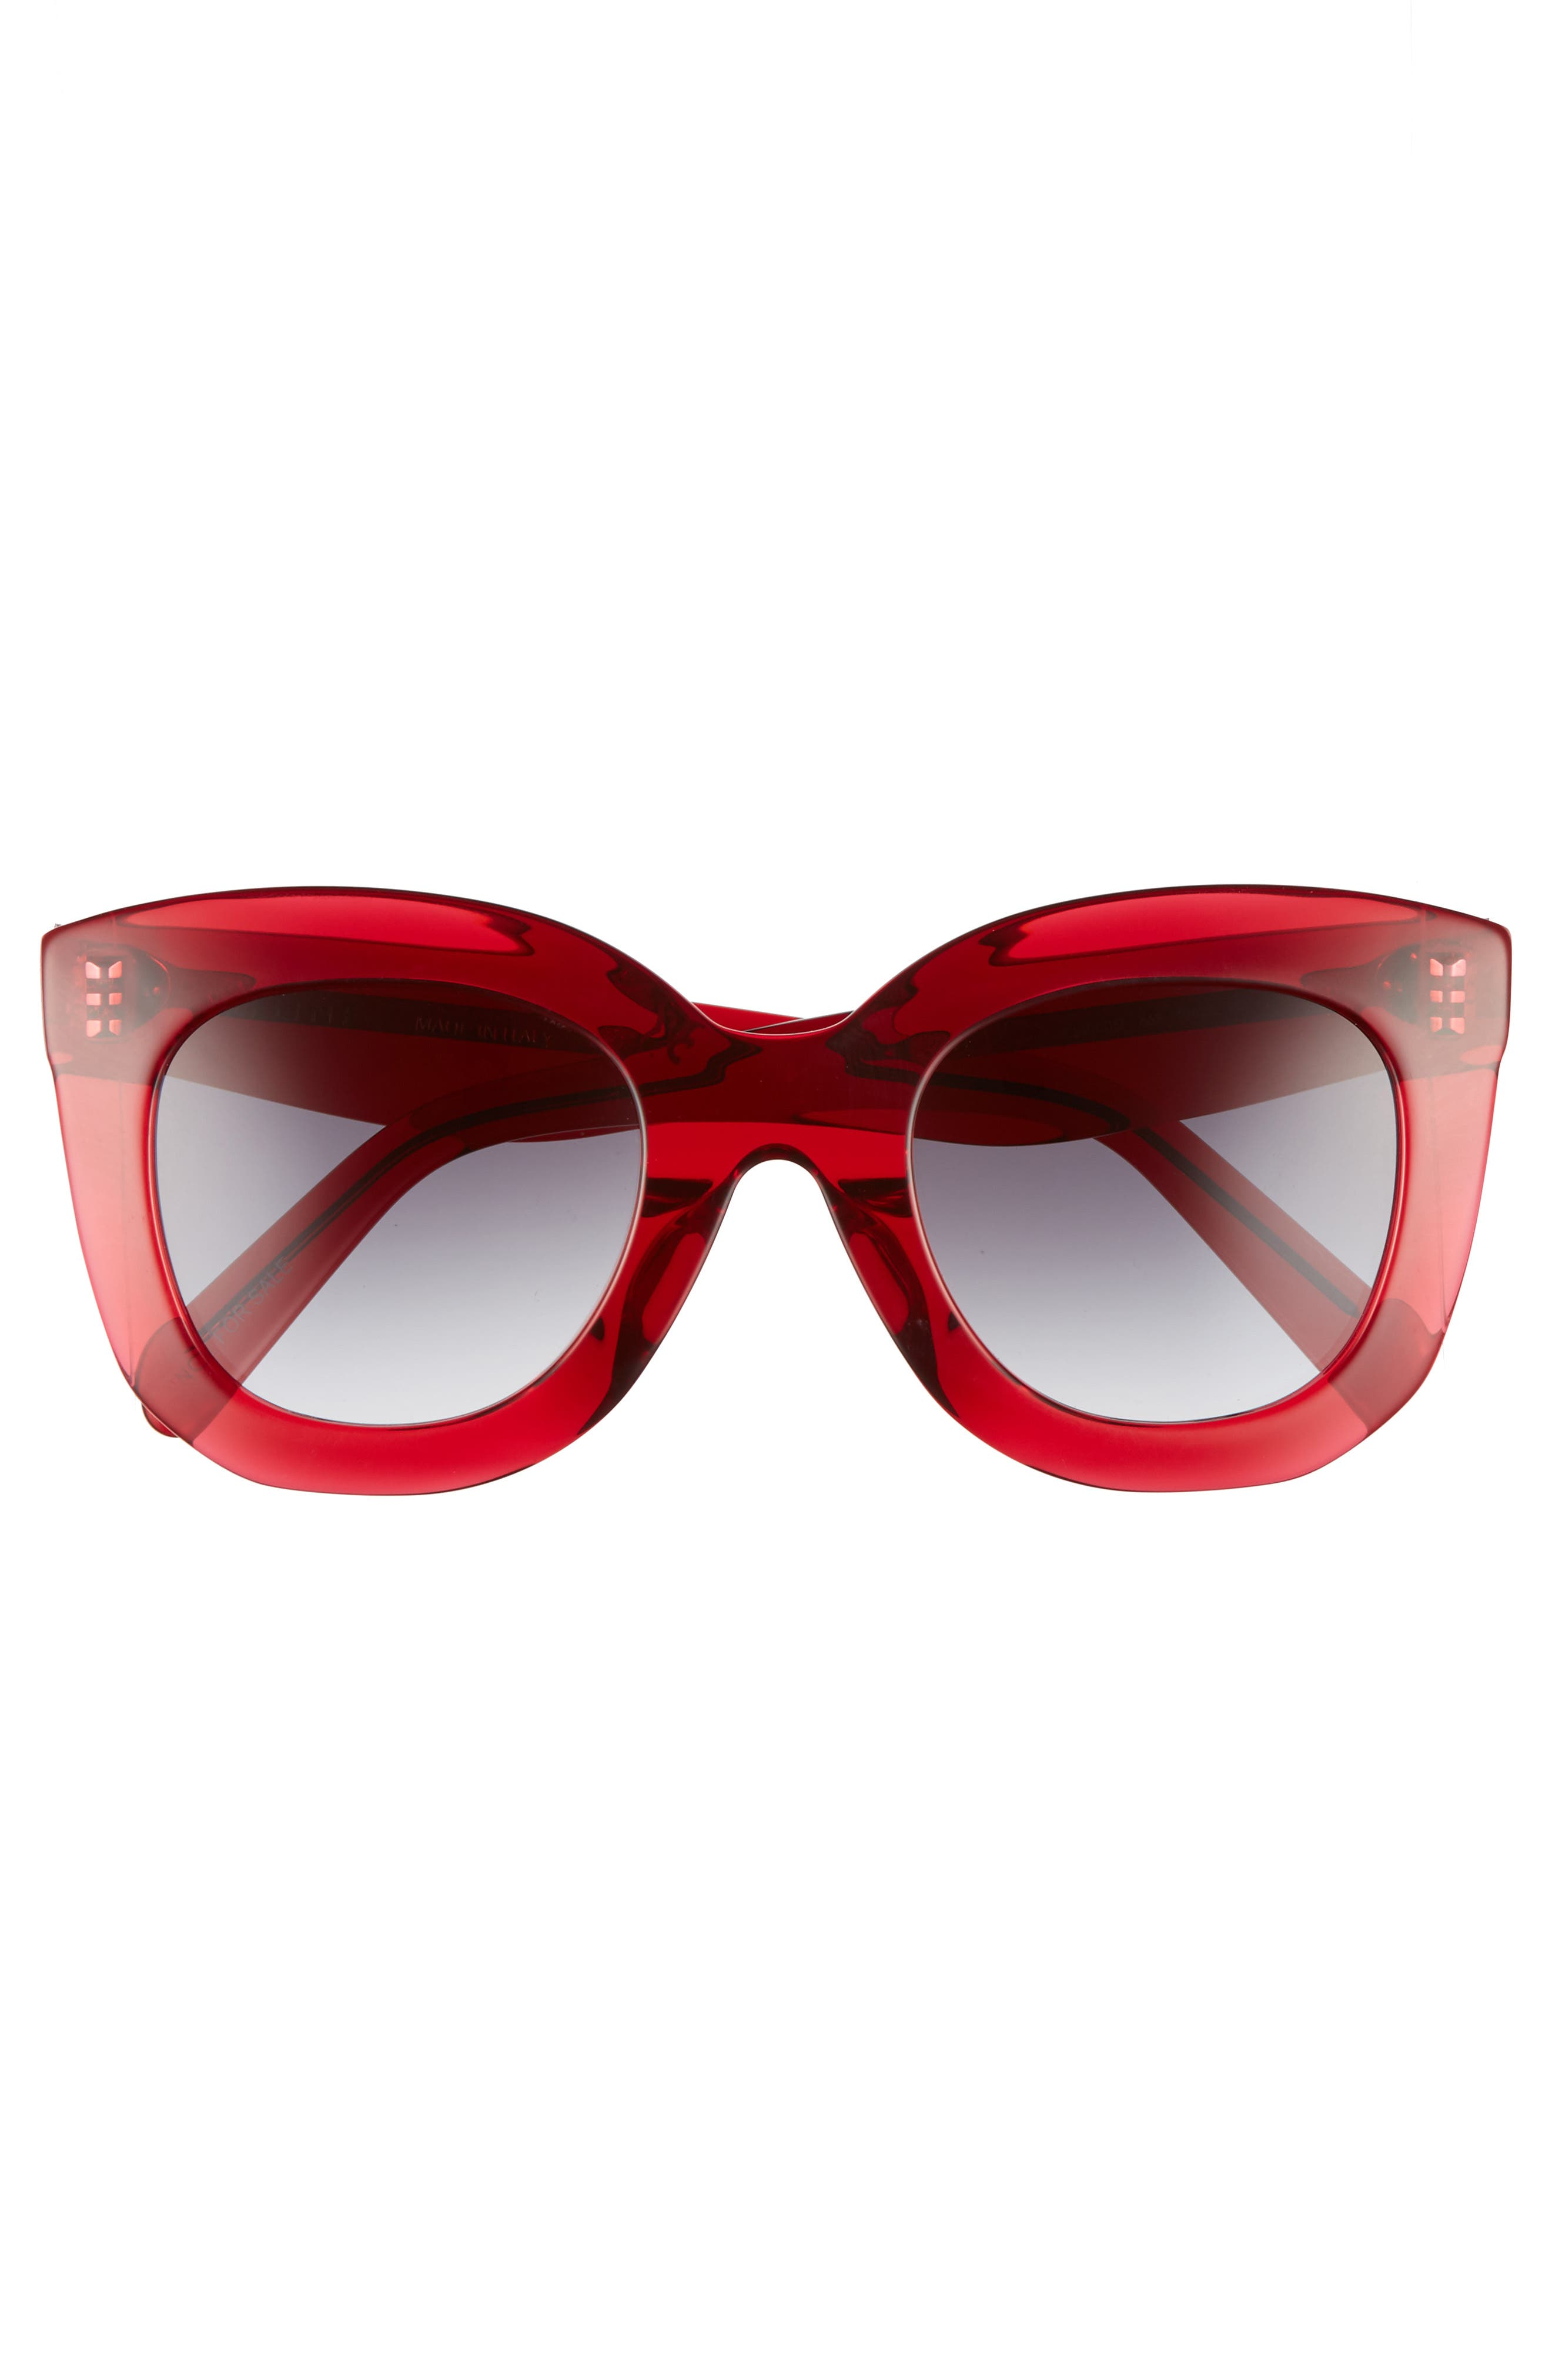 Special Fit 49mm Cat Eye Sunglasses,                             Alternate thumbnail 3, color,                             Red/ Smoke